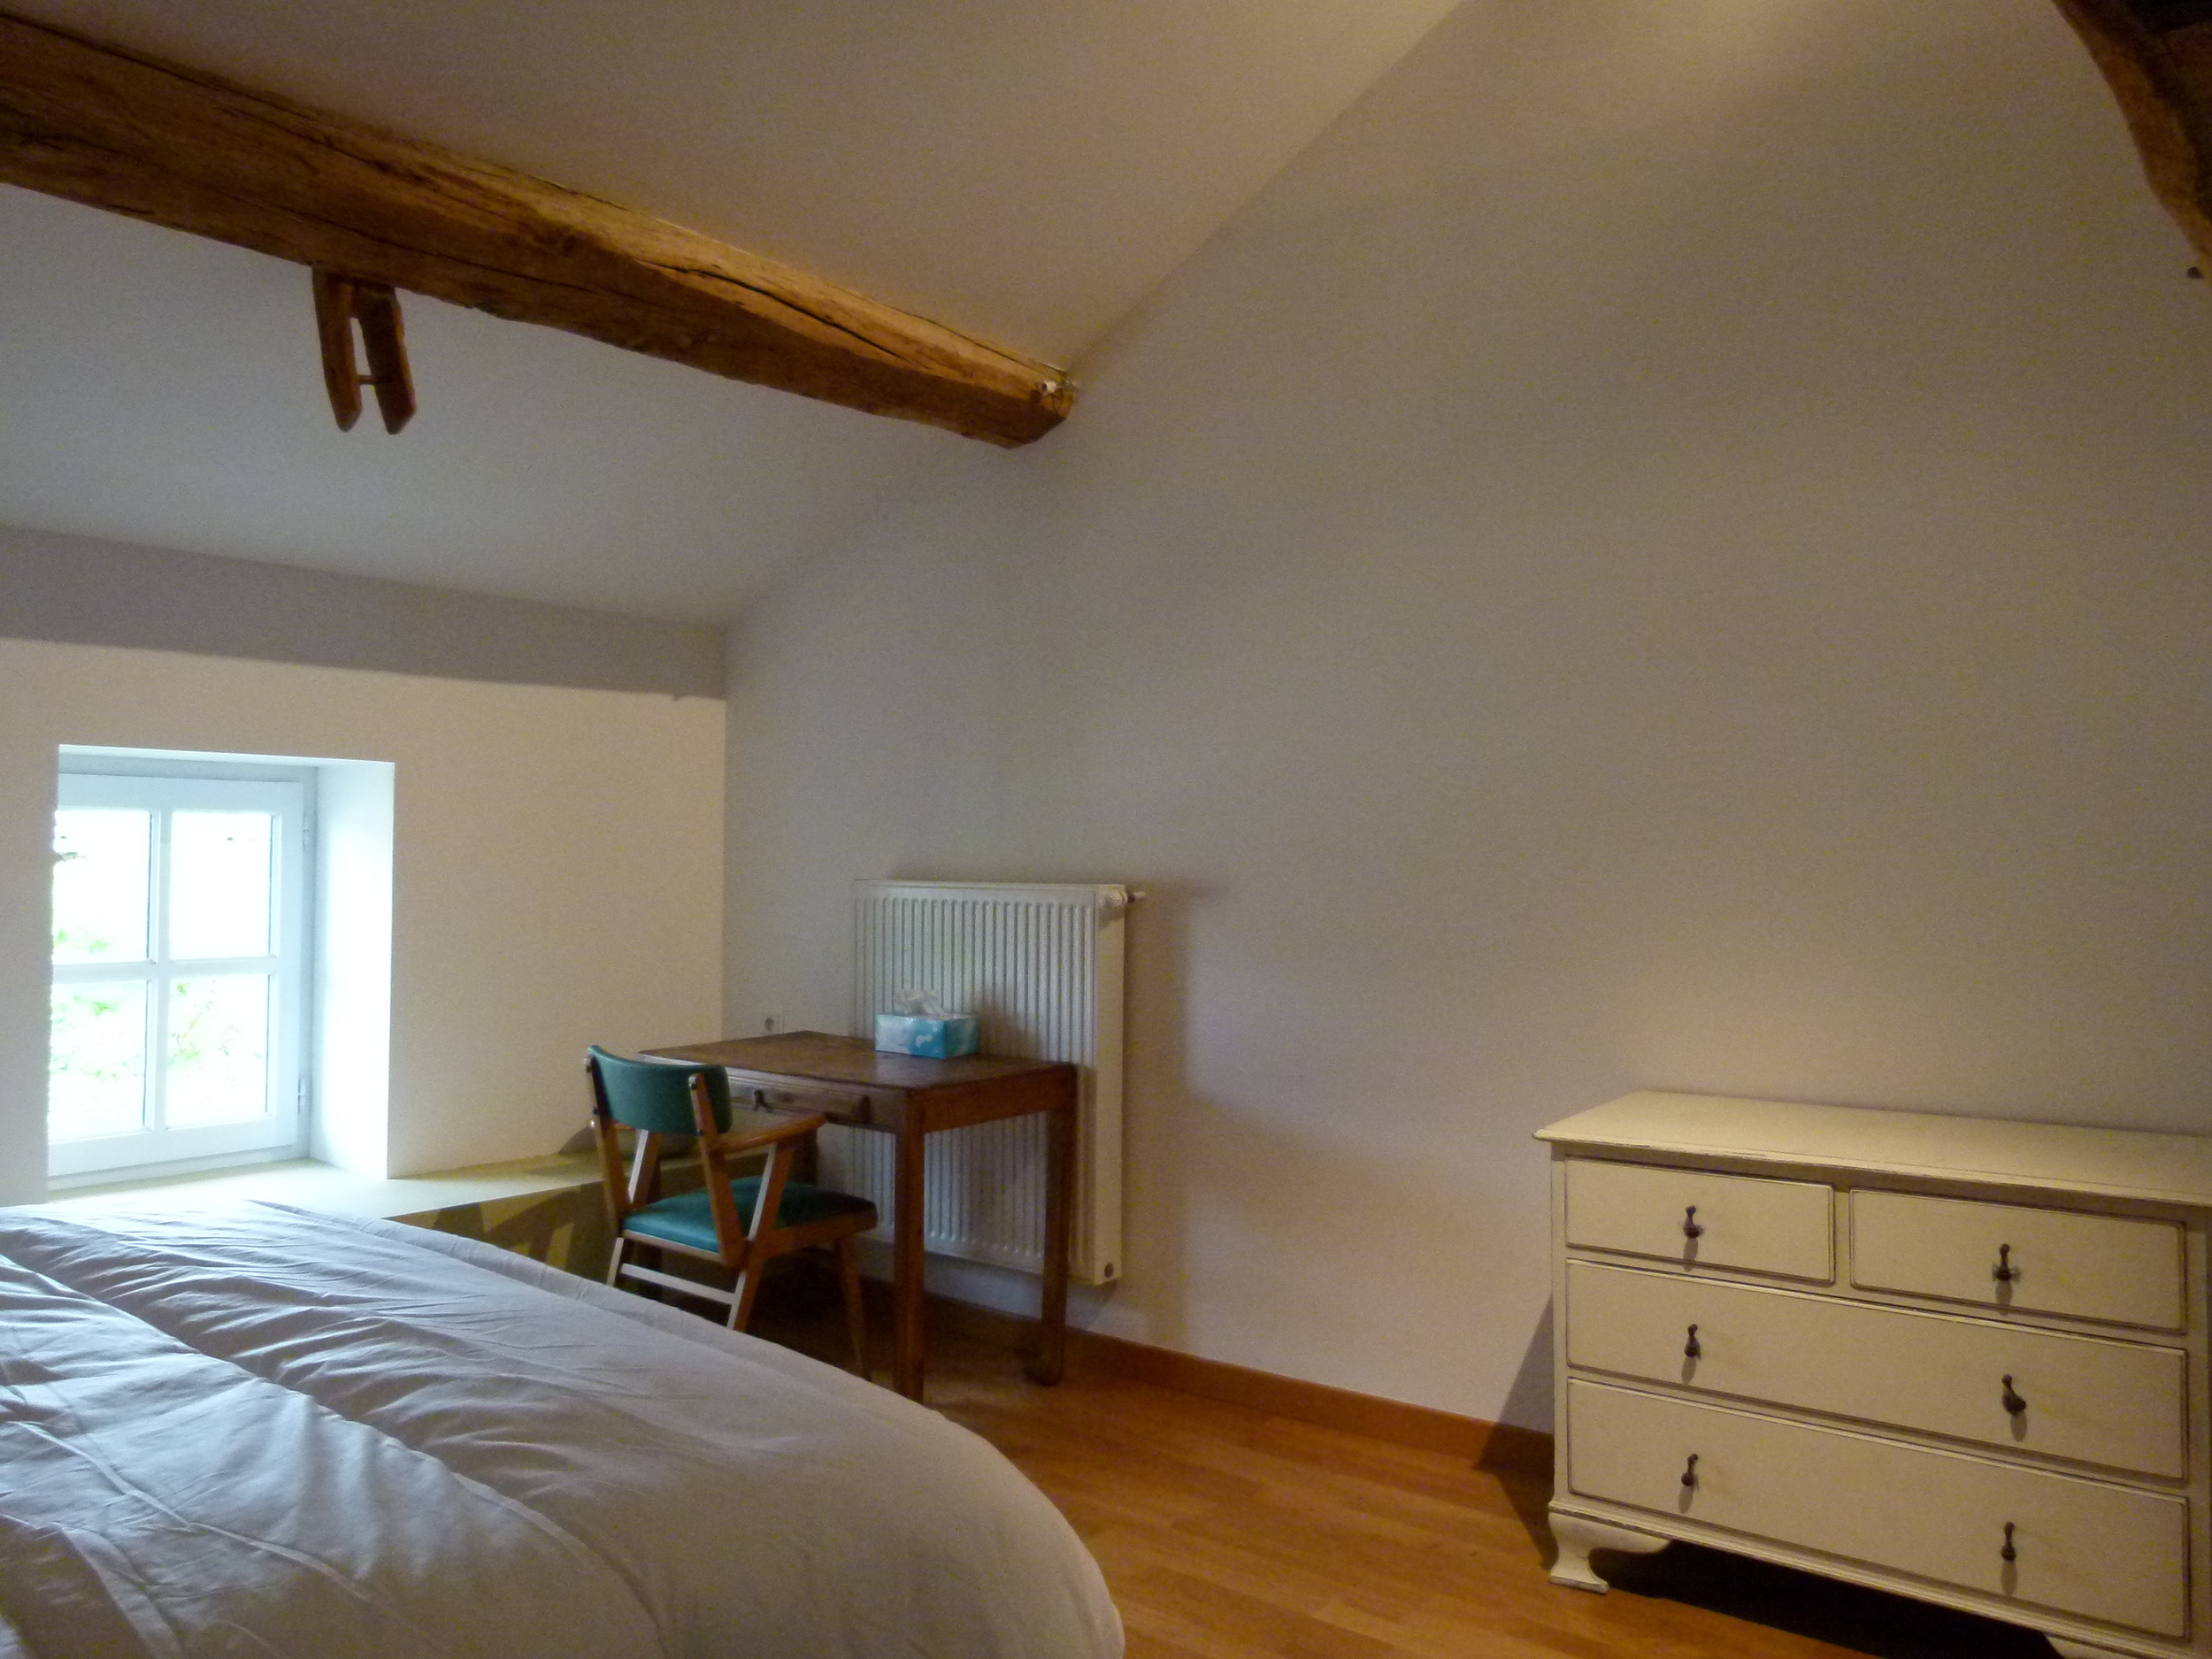 La Roche - bedroom 2